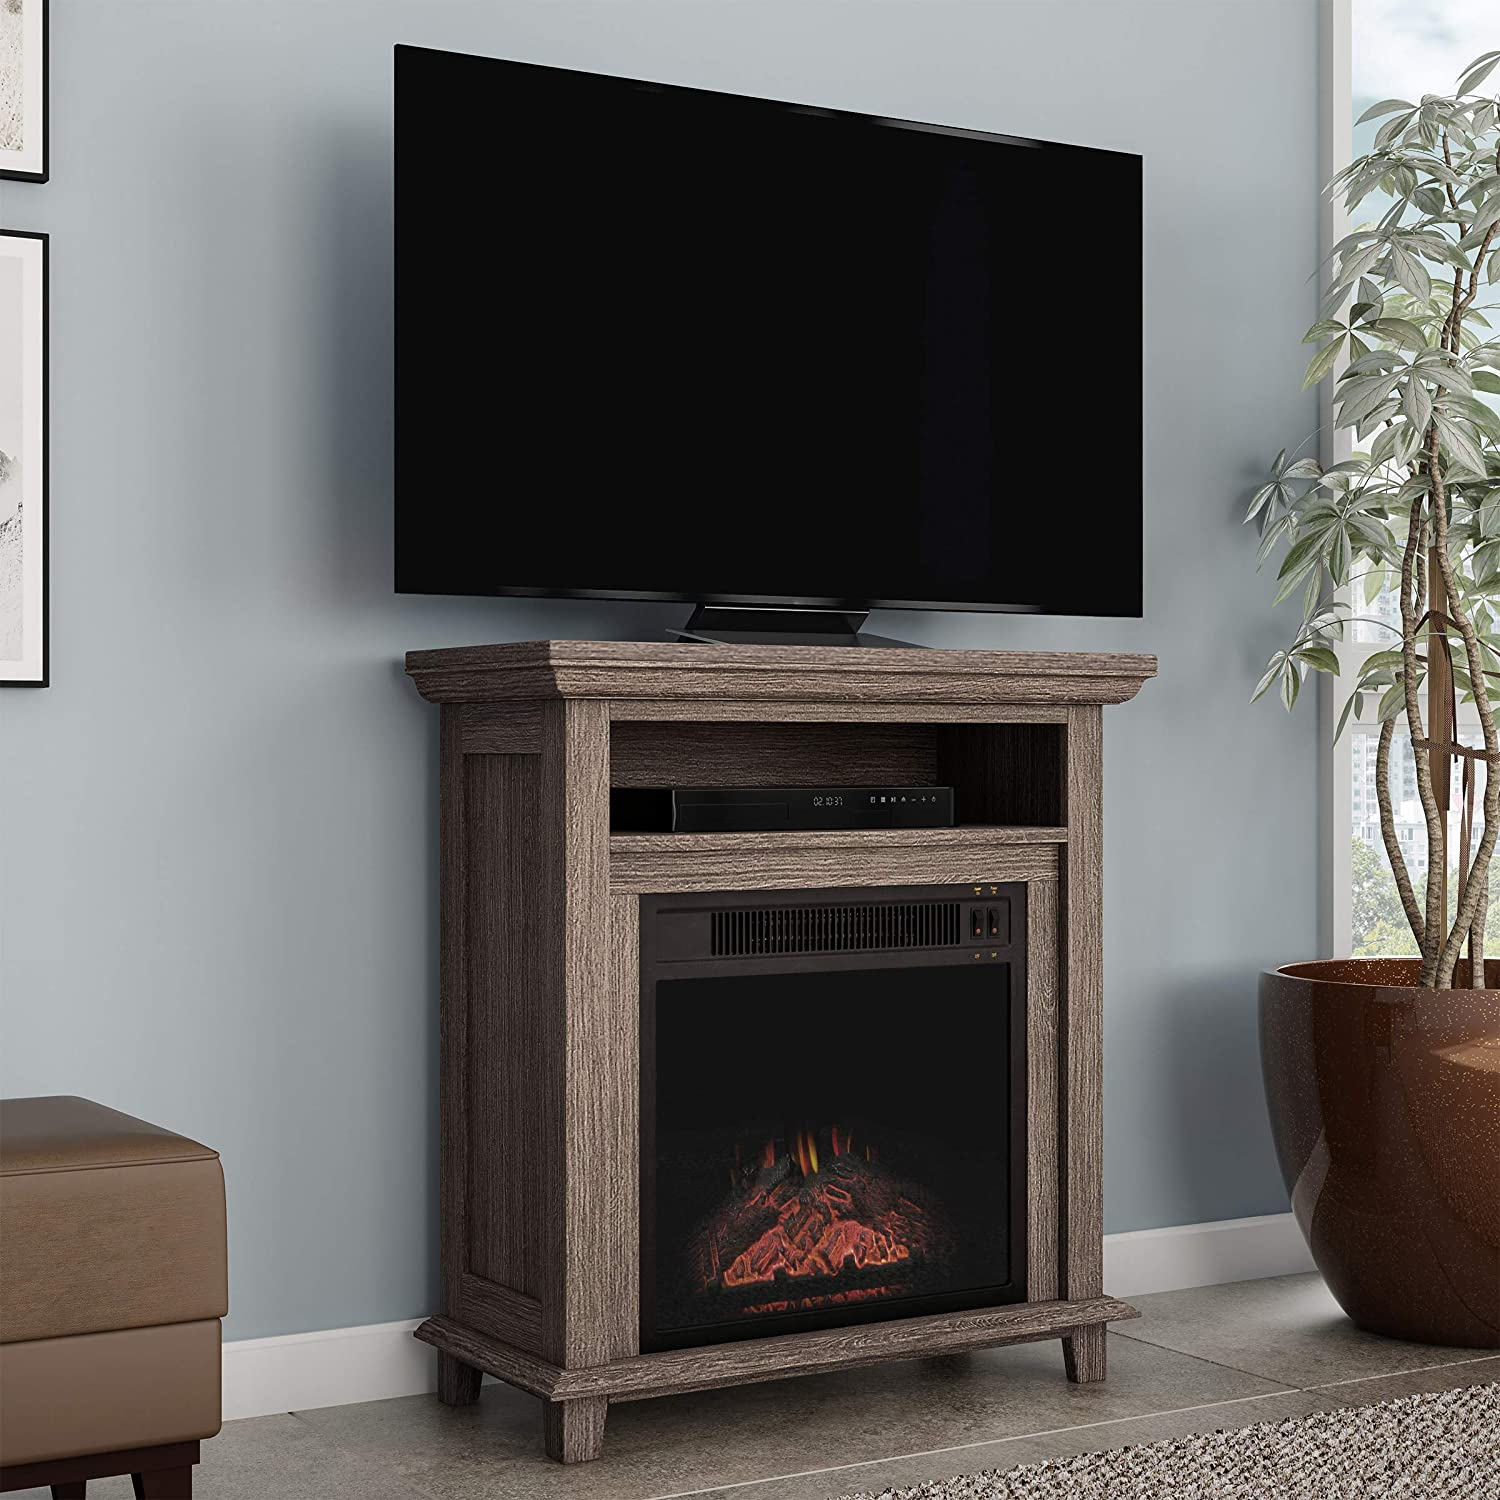 """Northwest 80-FPWF-4 Electric Fireplace TV Stand– 29"""" Freestanding Console with Shelf, Faux Logs and LED Flames, Space Heater Entertainment Center (Gray)"""